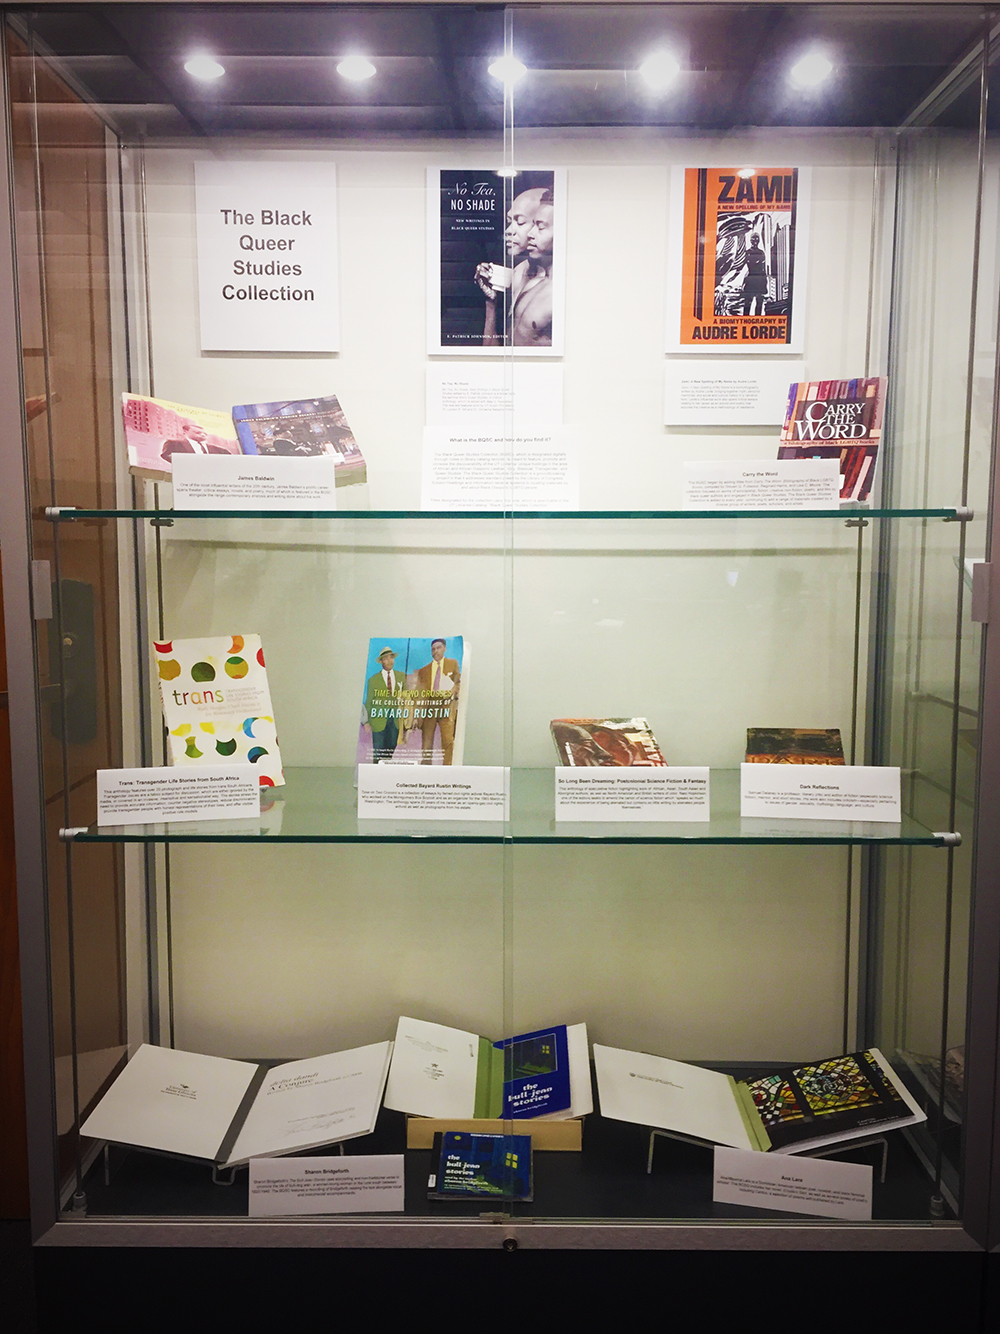 Exhibit of items from the Black Queer Studies Collection.